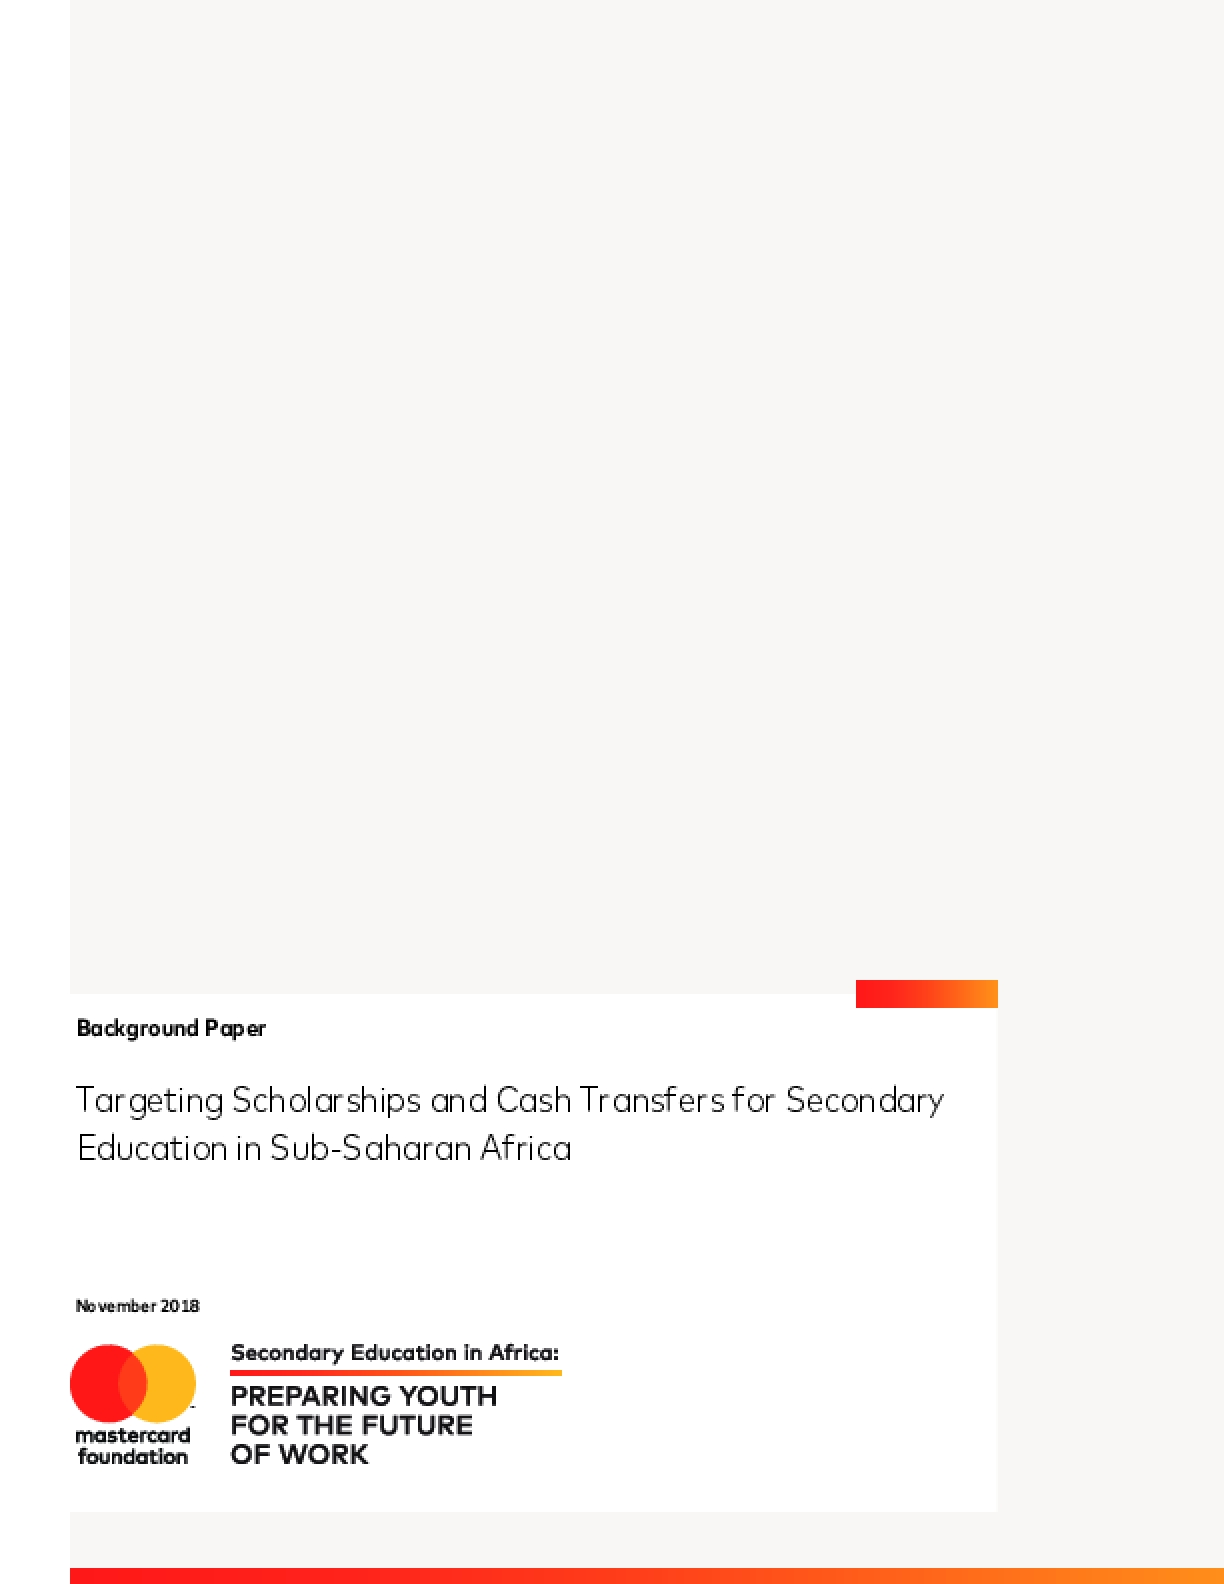 Targeting Scholarships and Cash Transfers for Secondary Education in Sub-Saharan Africa